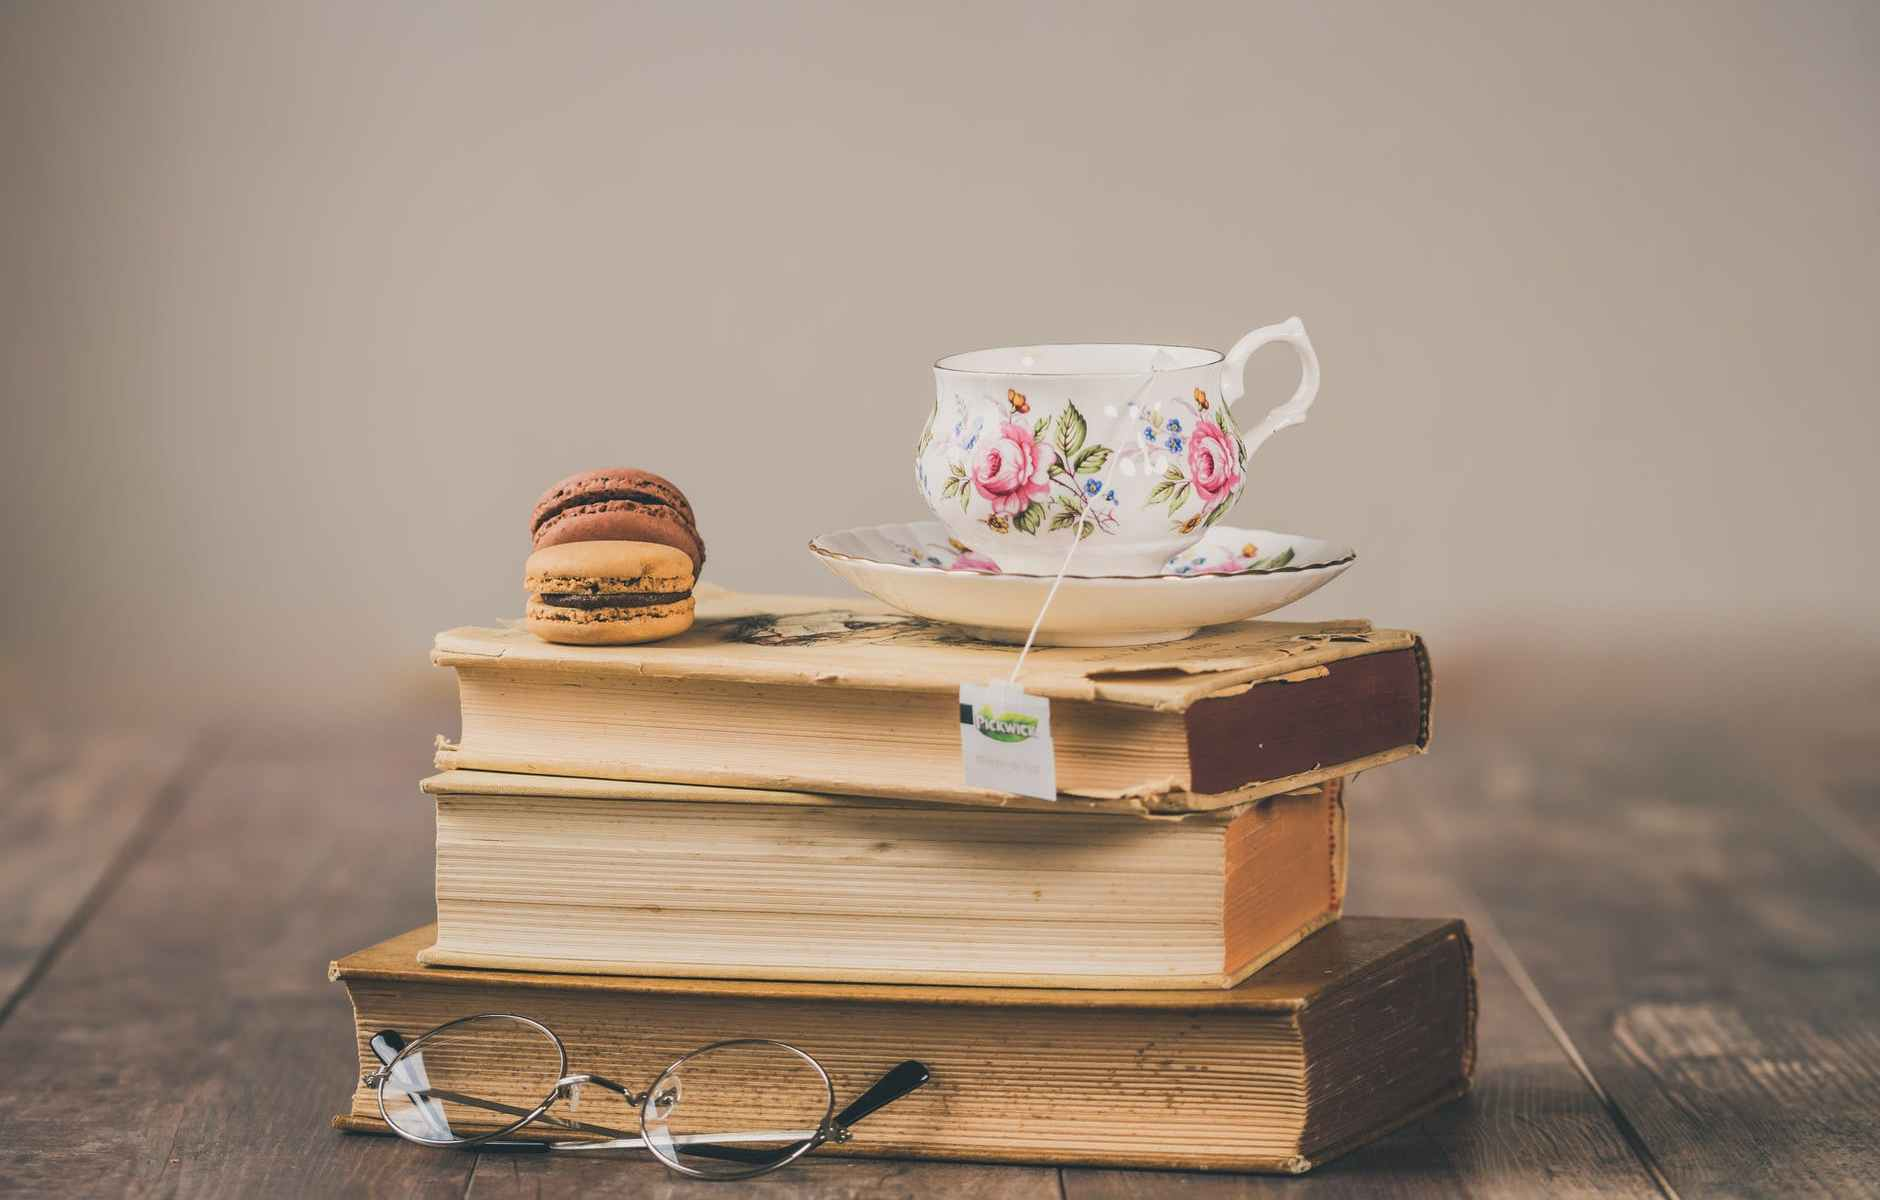 photo of teacup on top of books